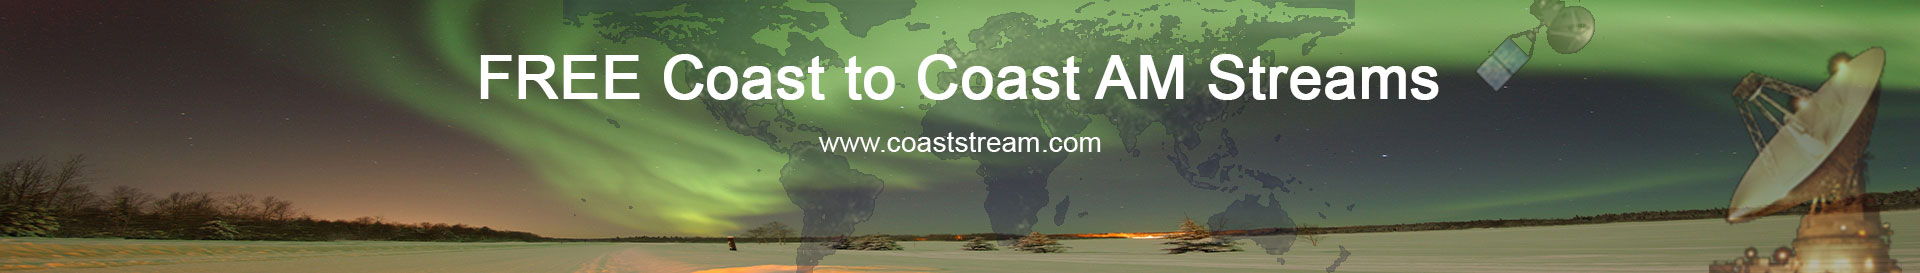 Free Coast to Coast AM Listen Links   Listen for Free - Why Pay?